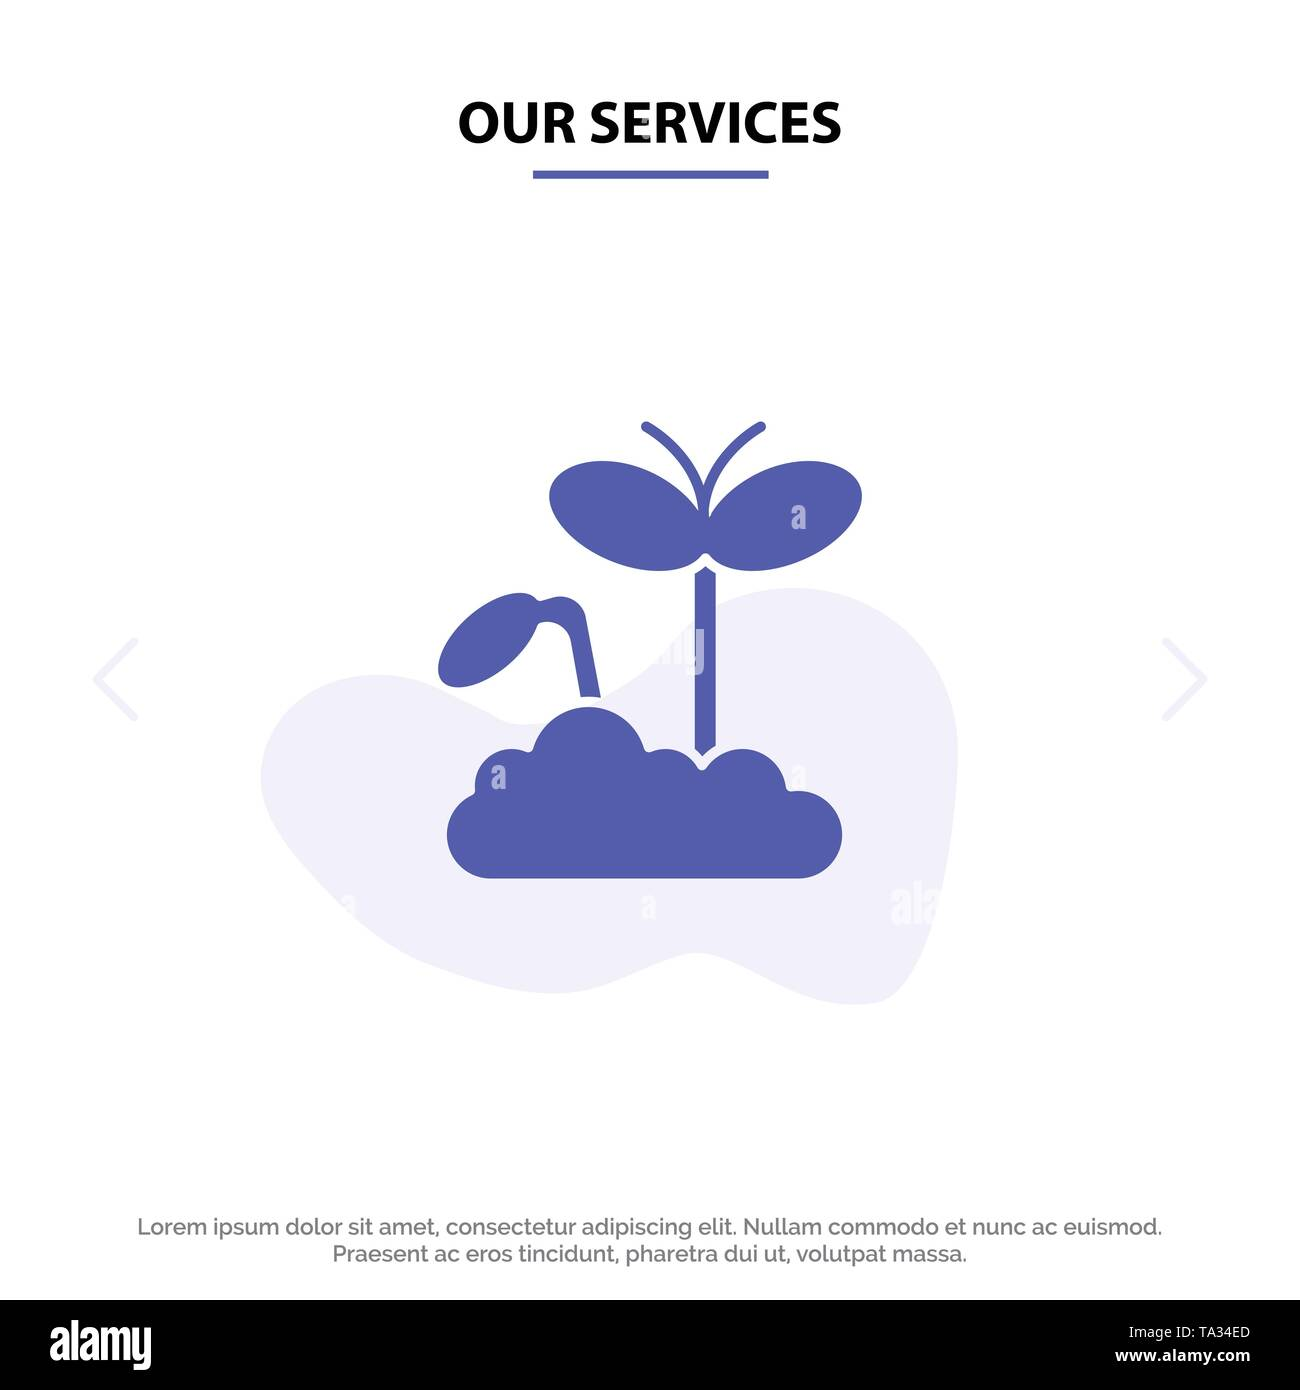 Our Services Growth, Increase, Maturity, Plant Solid Glyph Icon Web card Template - Stock Image